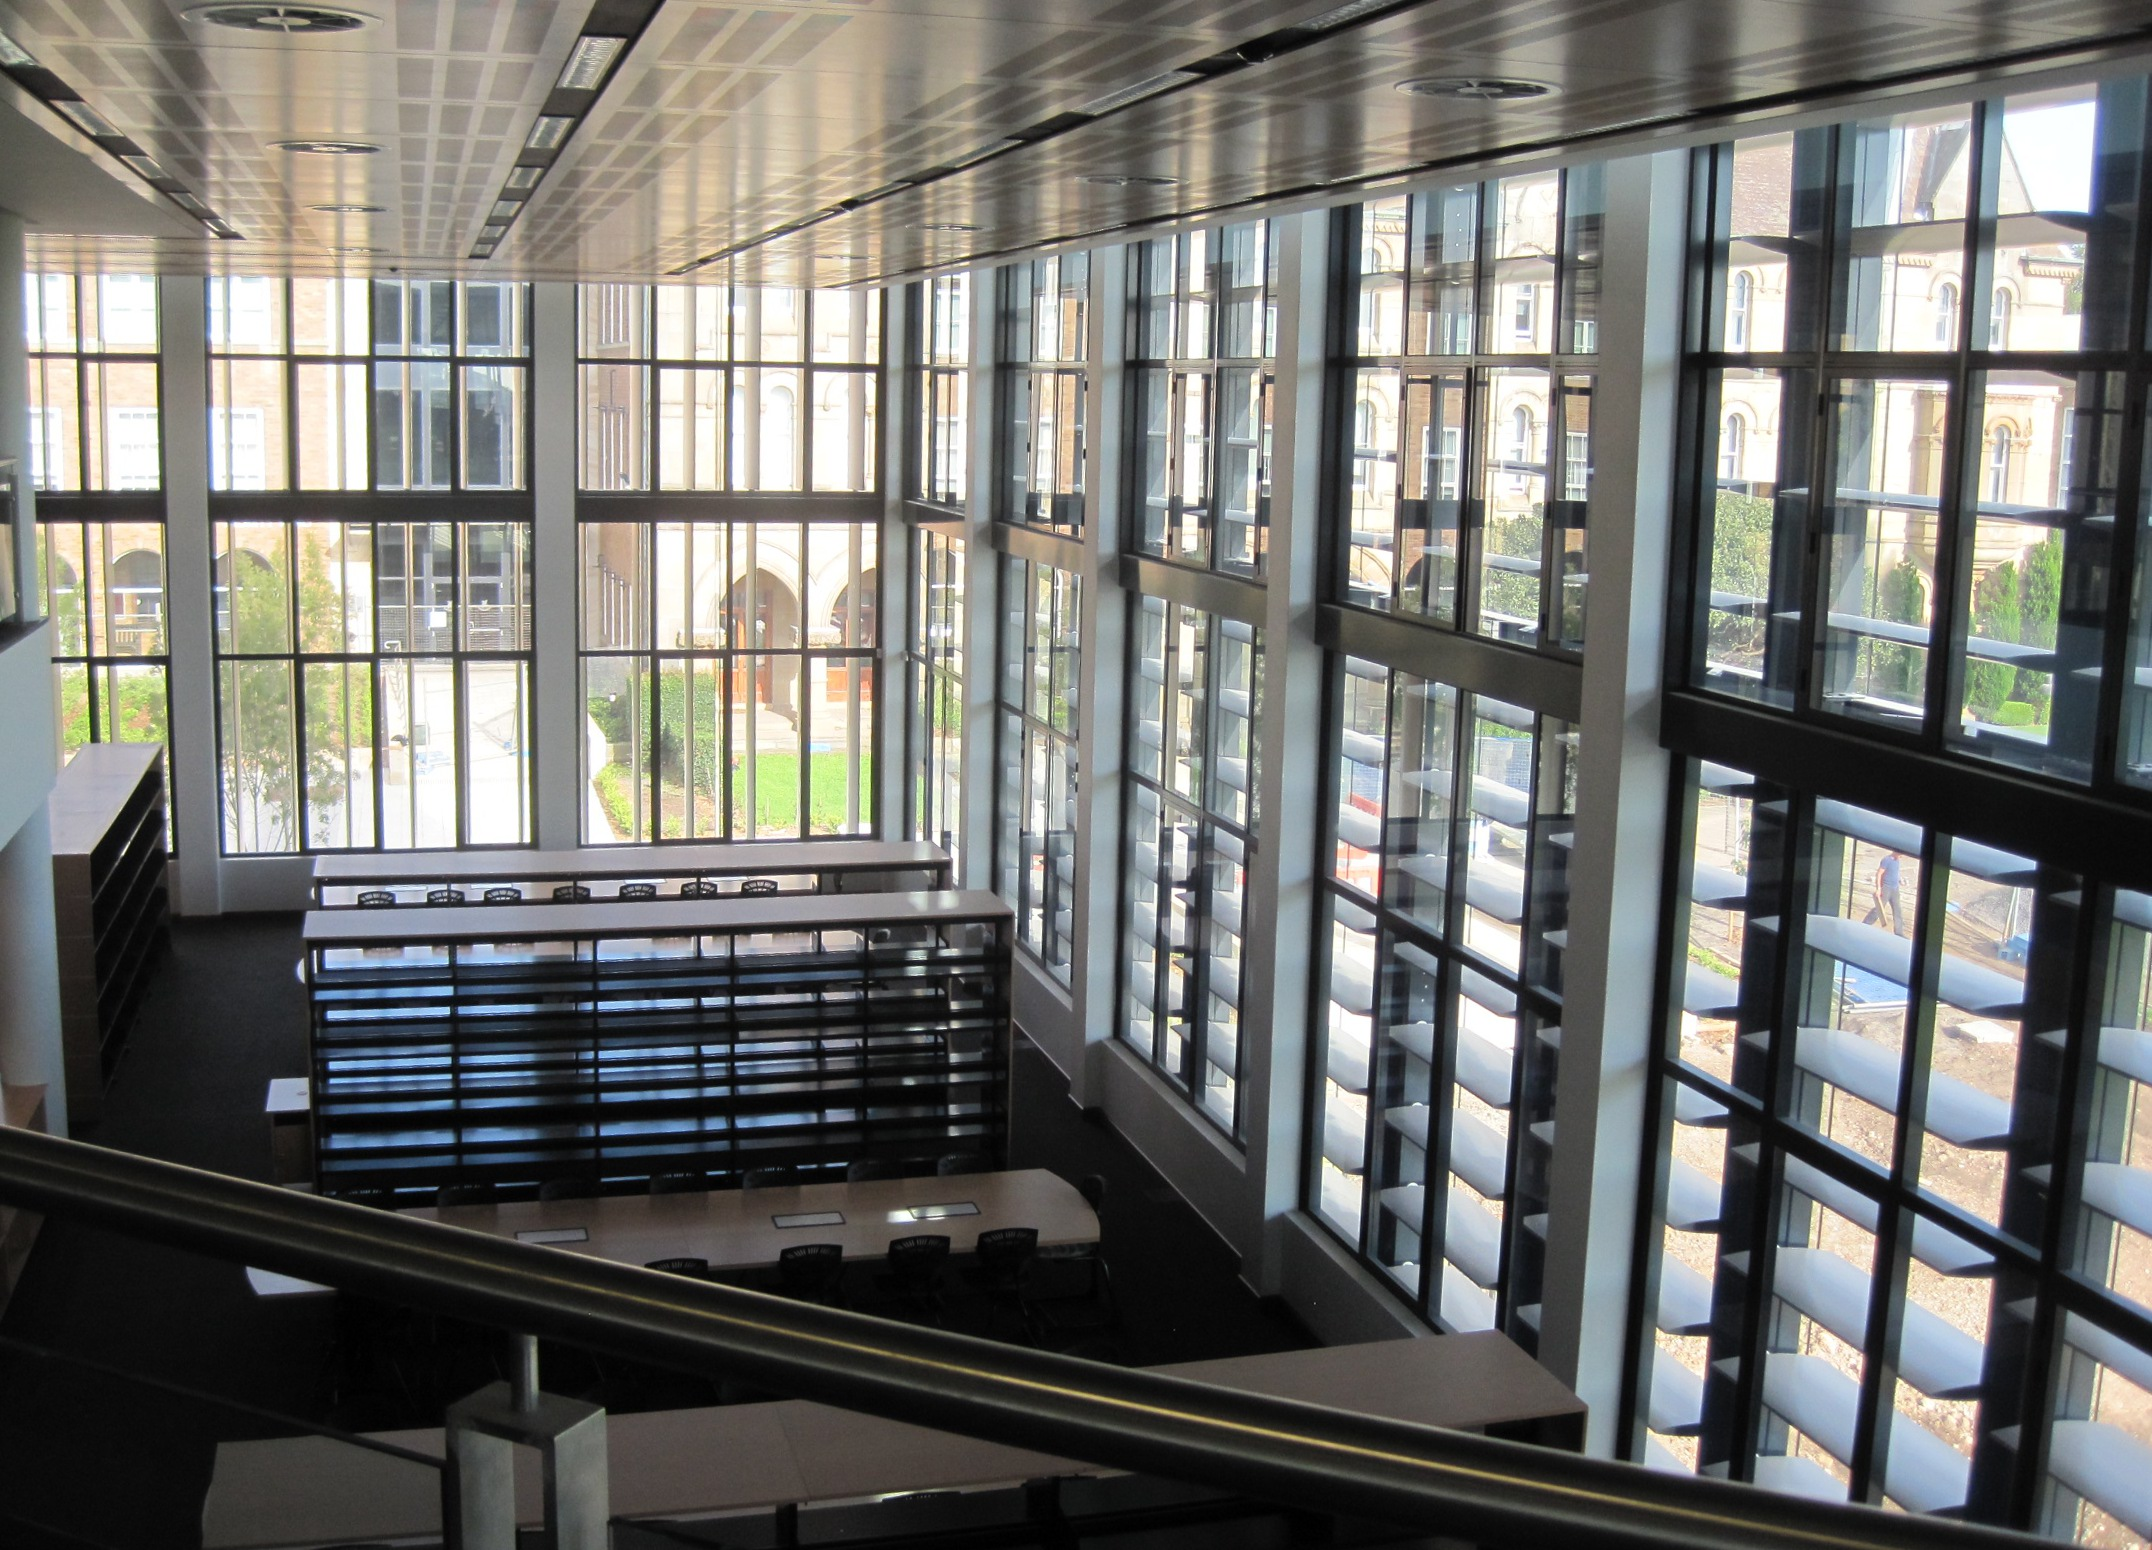 Inner Curtain Wall : Remote controlled sunshades visible inside the curtain